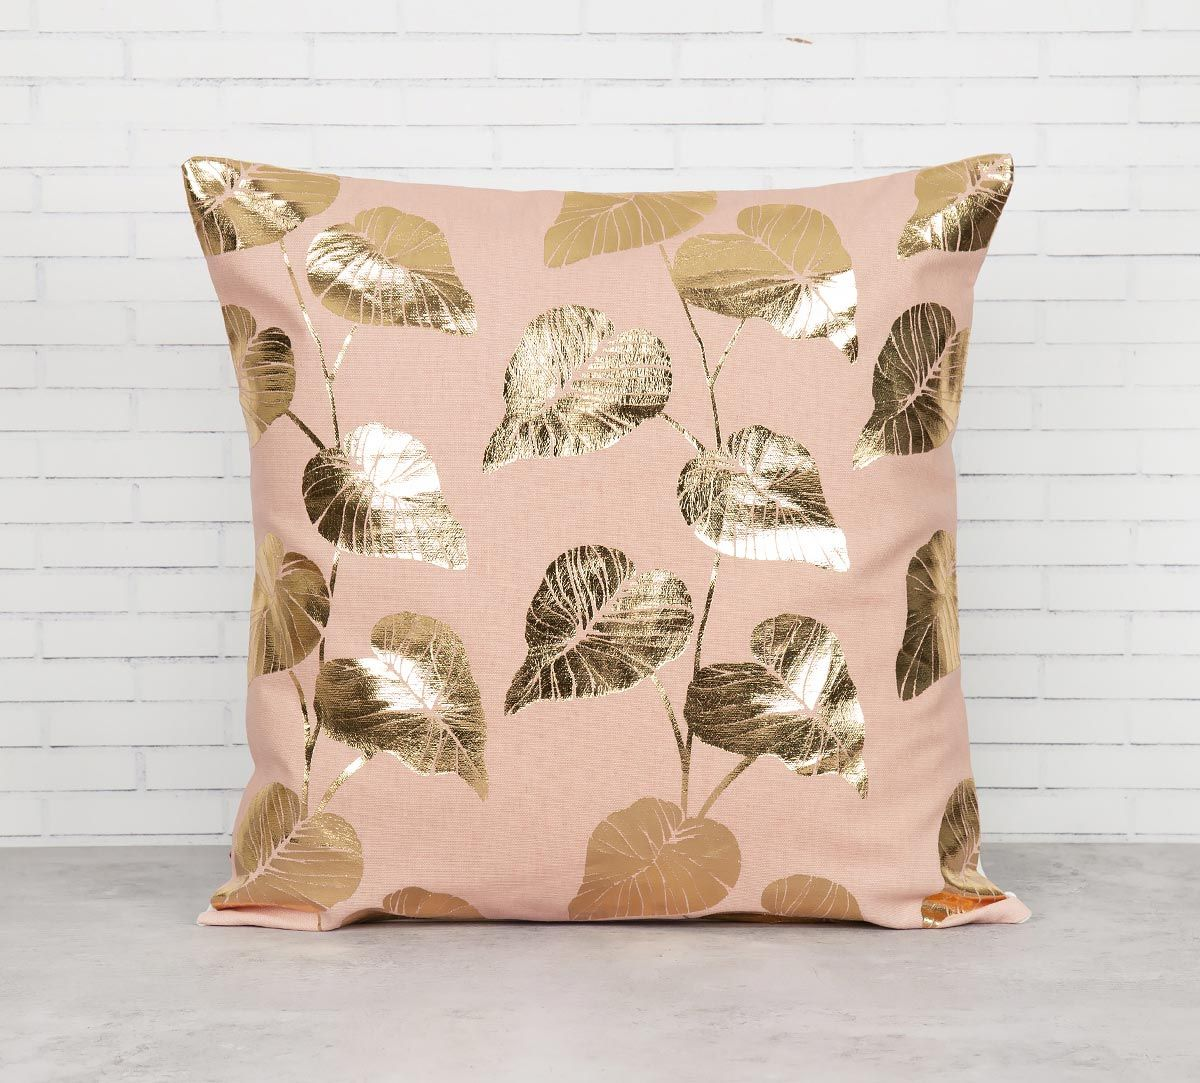 India Circus Leaf Creeper Foil Cushion Cover